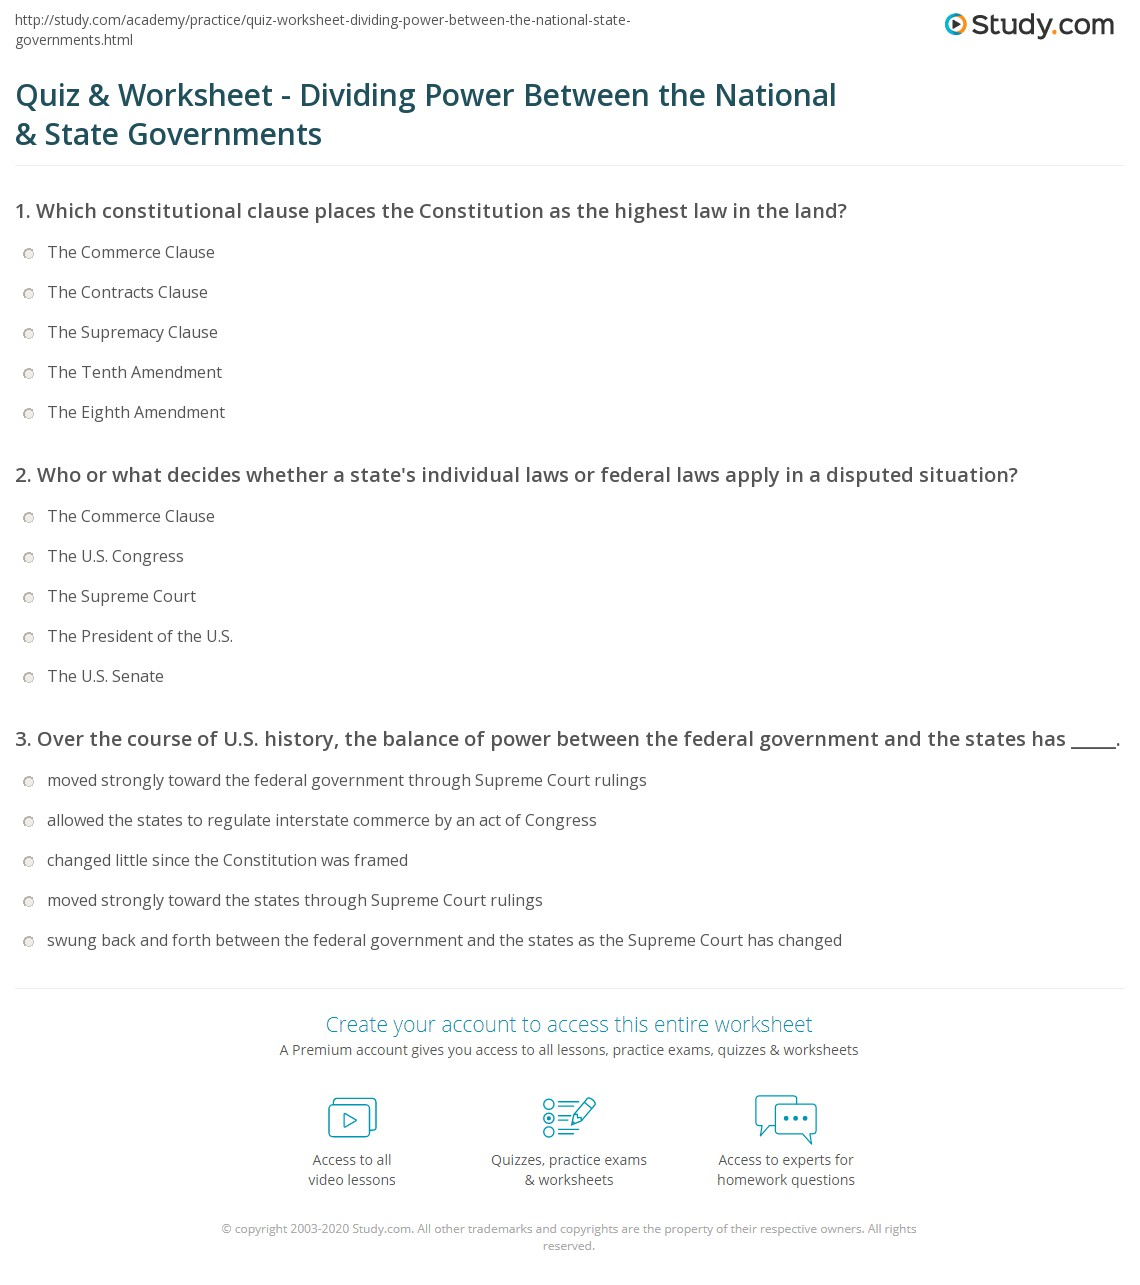 Worksheets State Government Worksheets quiz worksheet dividing power between the national state print division of powers government and states worksheet